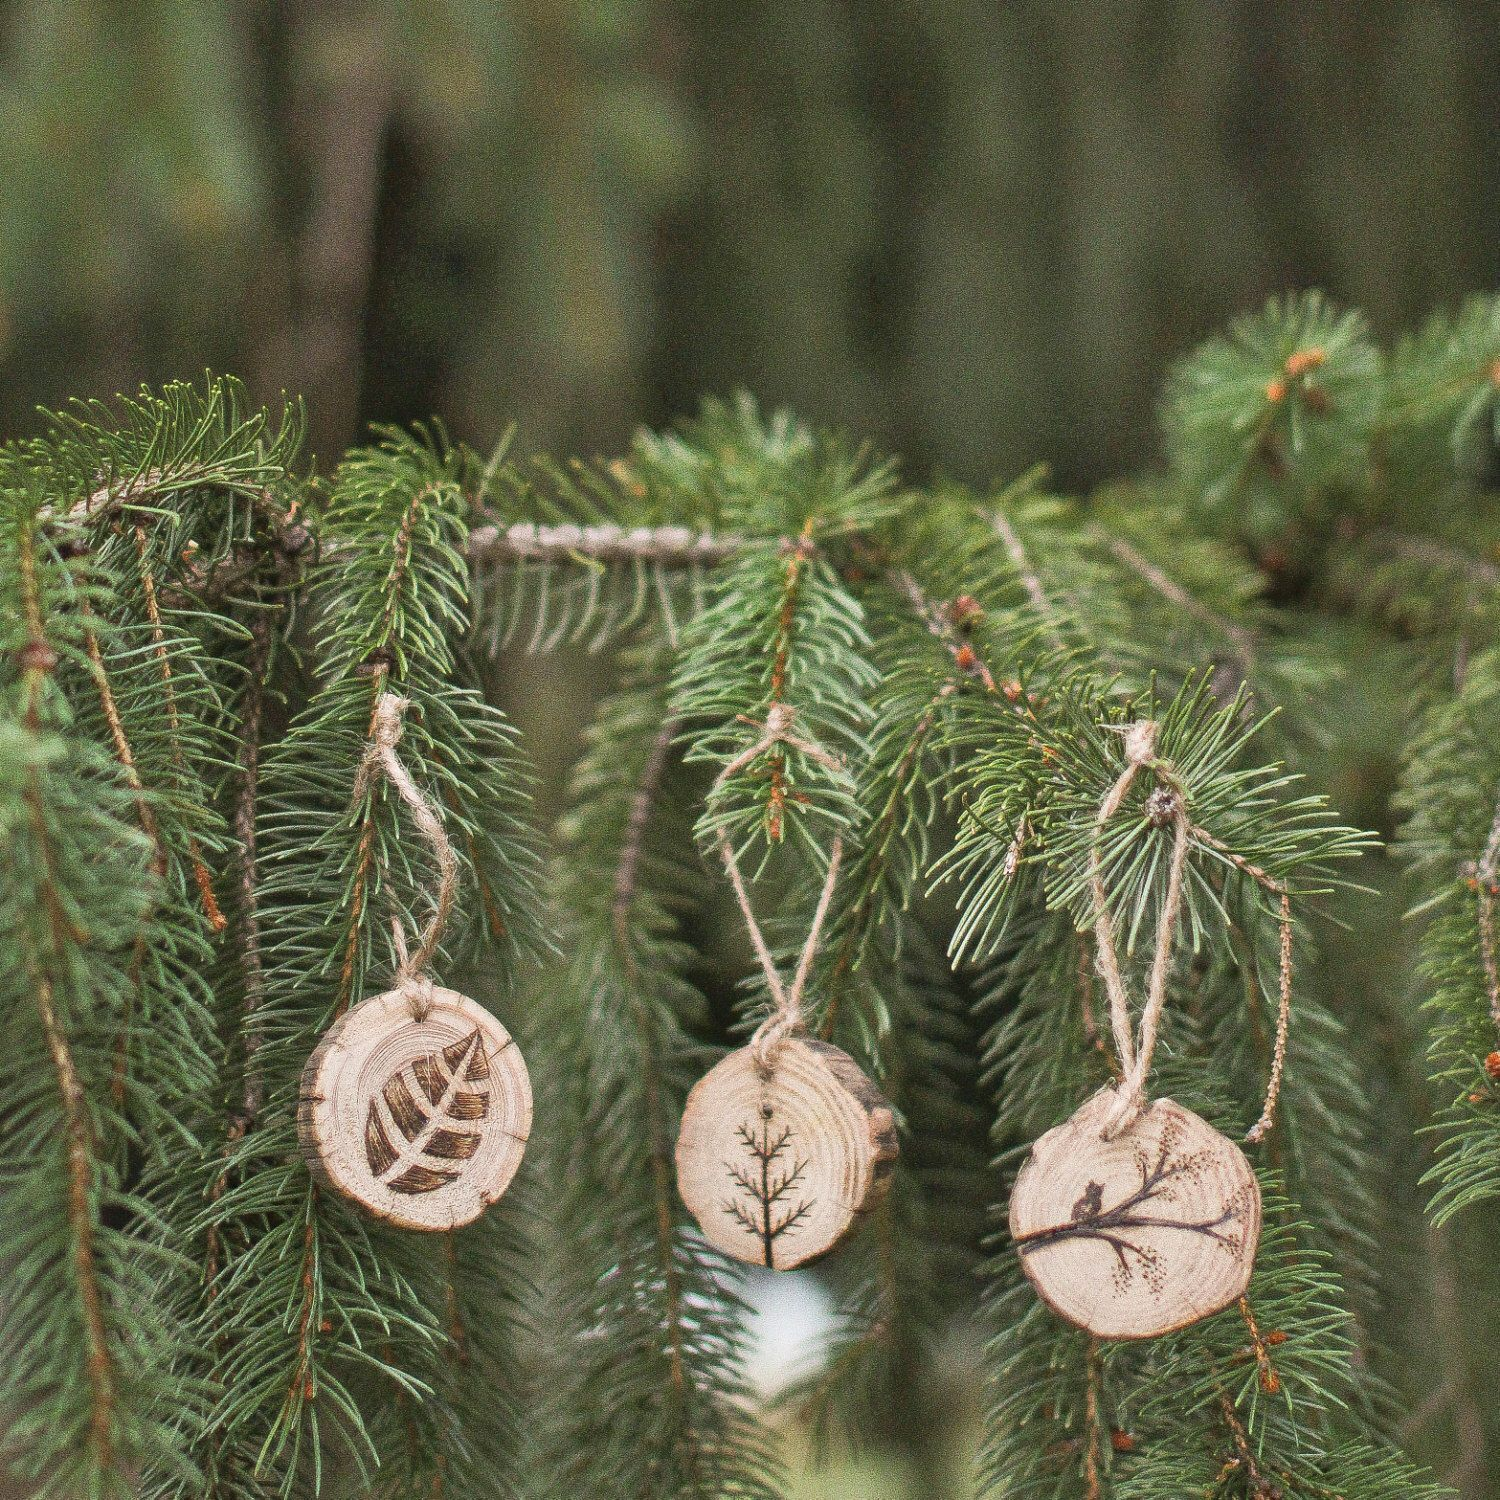 Set of 3 Tree, Owl with Tree, and Leaf Wood Burned Ornaments by GracemereWoods on Etsy https://www.etsy.com/listing/213465439/set-of-3-tree-owl-with-tree-and-leaf